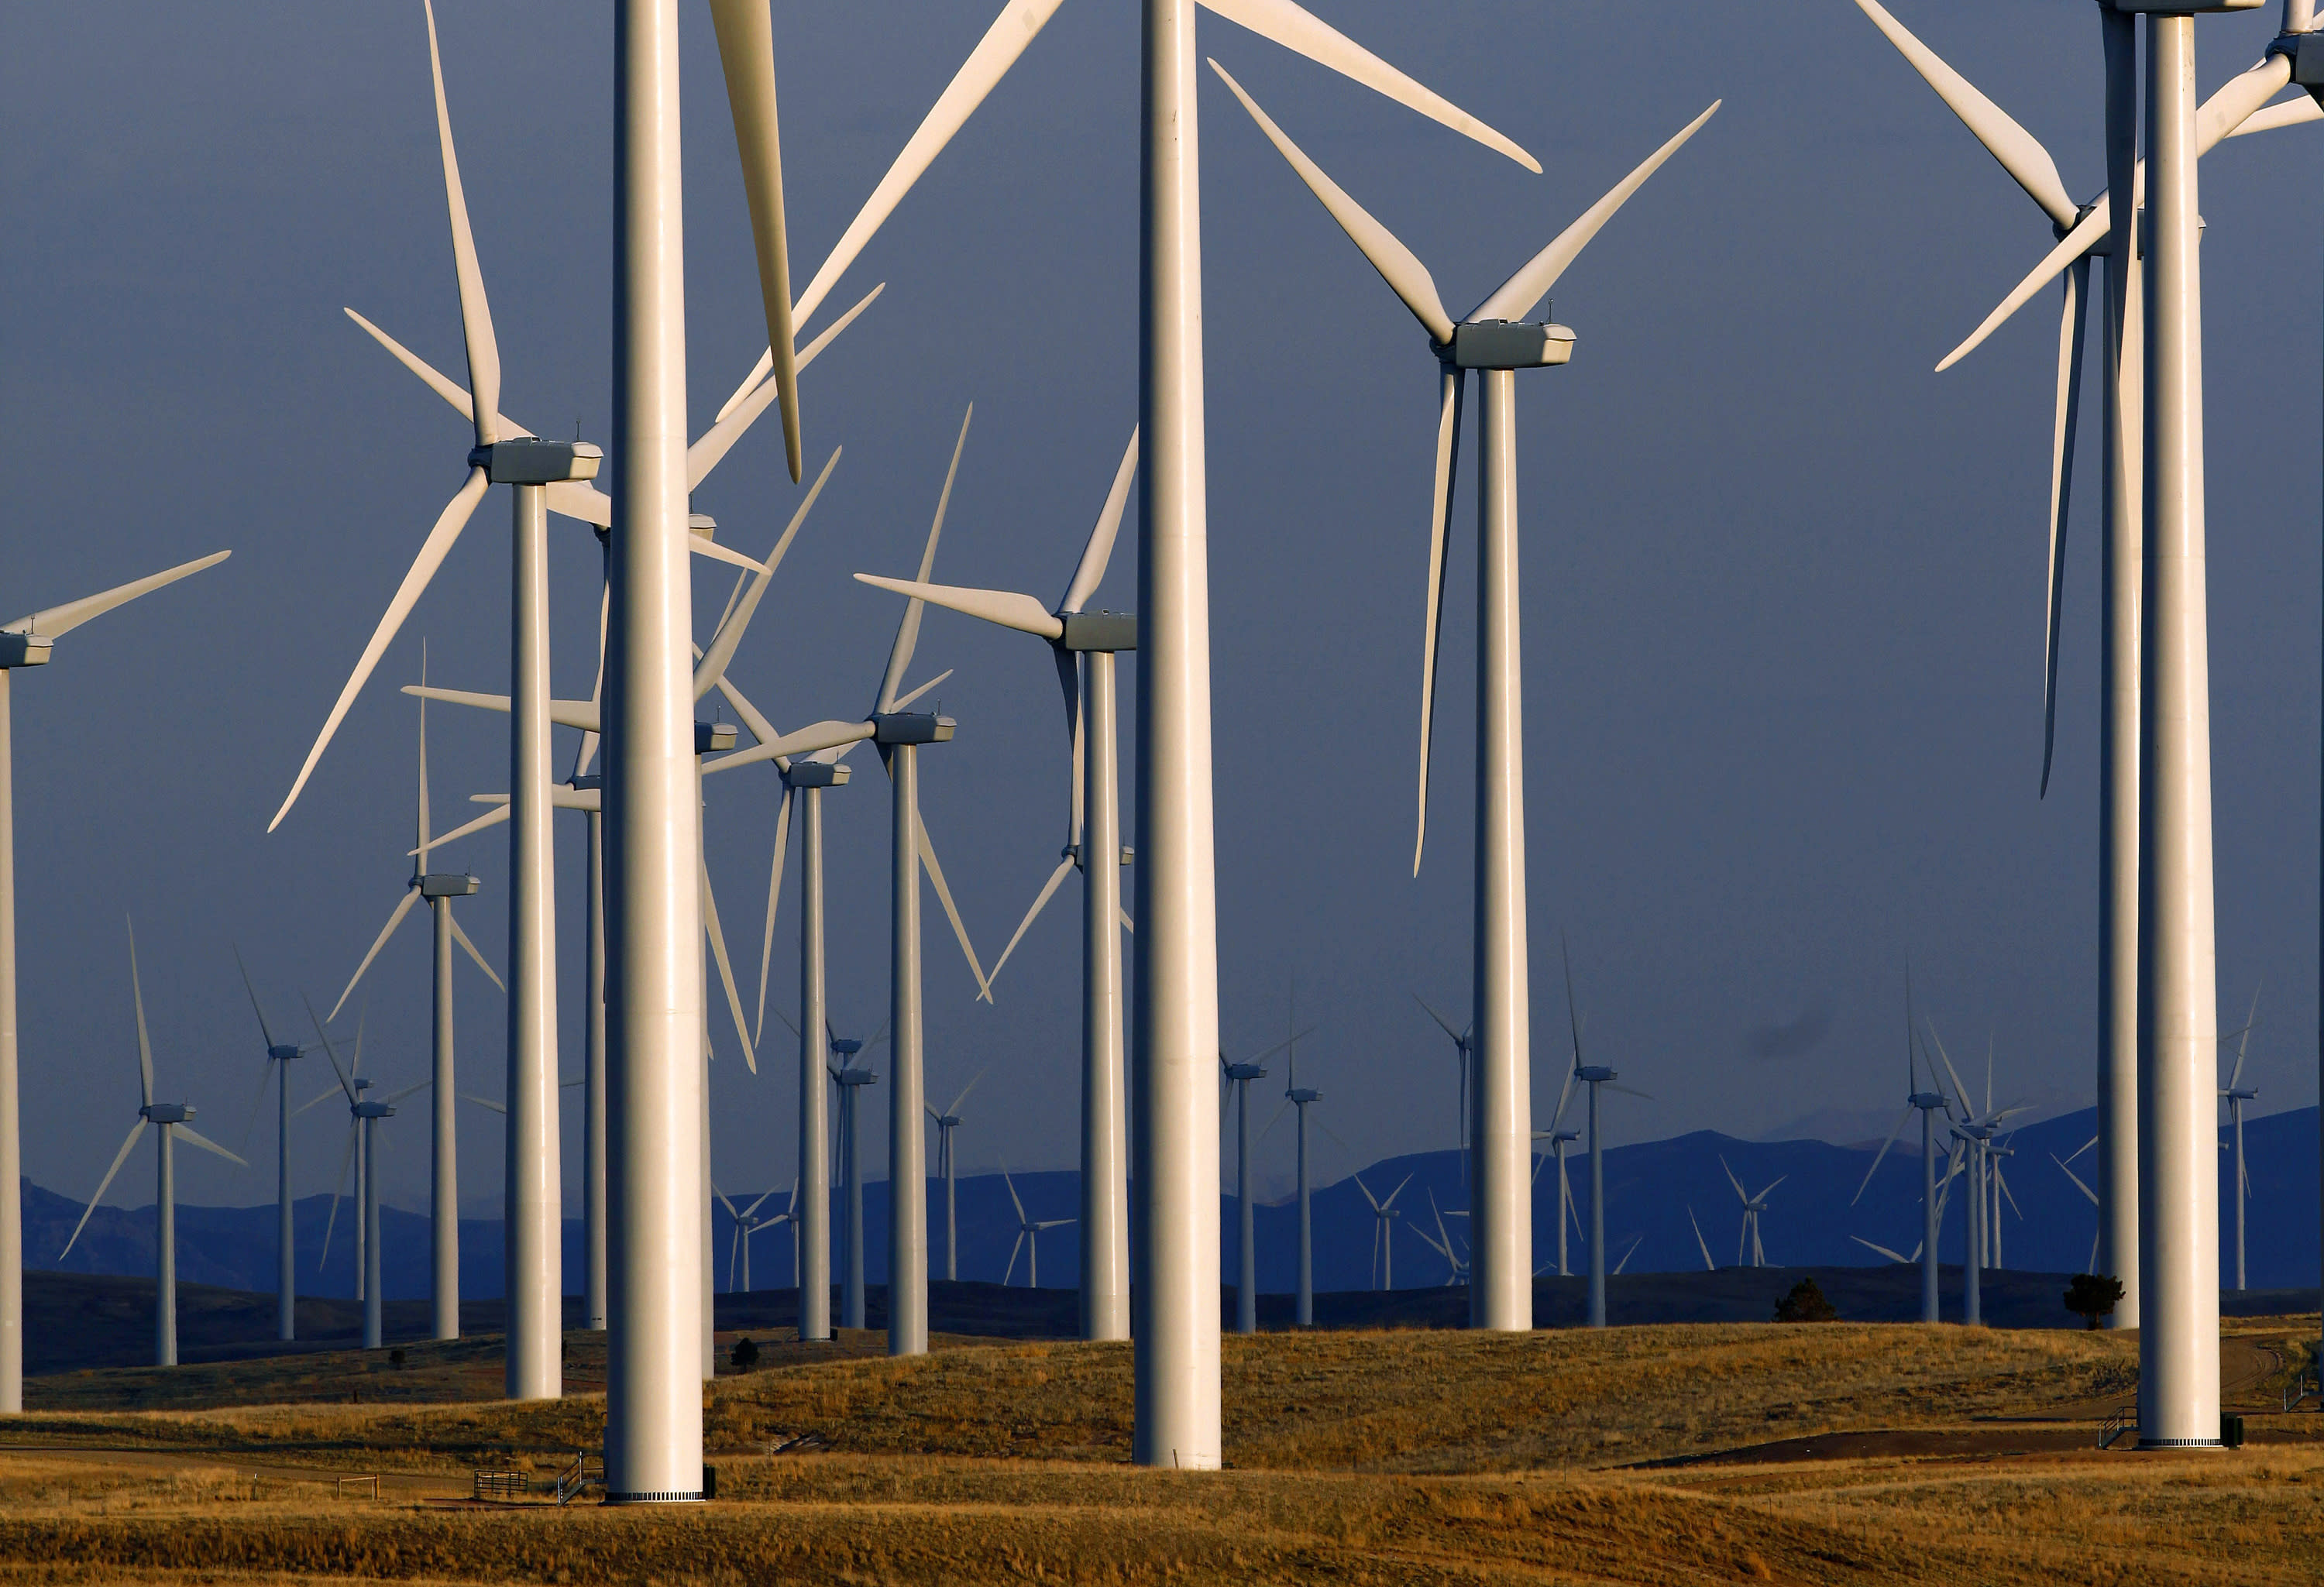 FILE - This May 6, 2013 file photo shows a wind turbine farm owned by PacifiCorp near Glenrock, Wyo. Land-based turbines are rising by the thousands across America, from the remote Texas panhandle to cornfields of Iowa. (AP Photo/Matt Young)